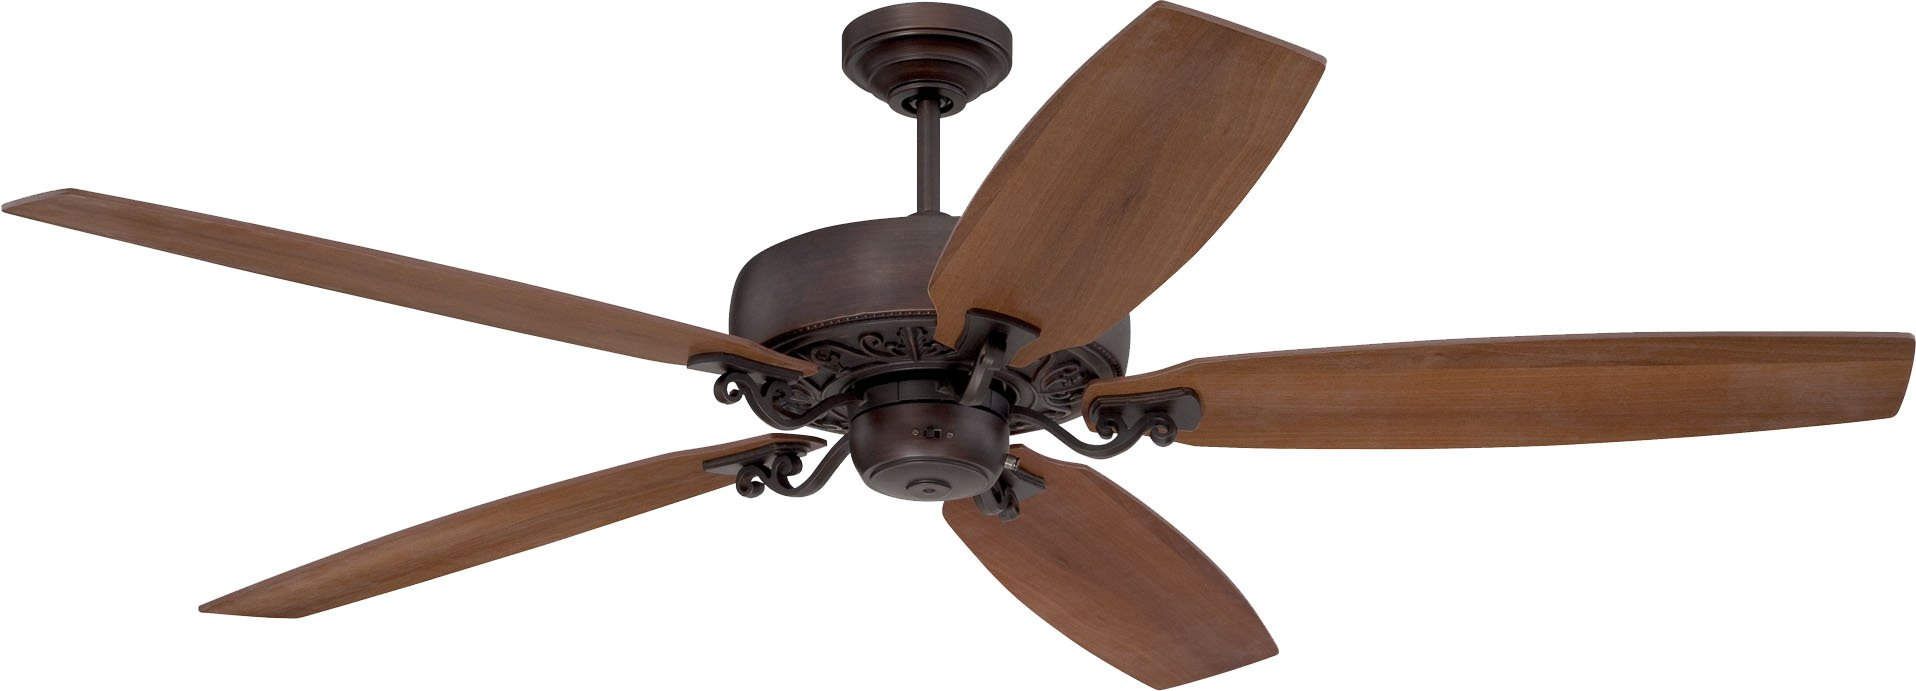 Craftmade PAT64ABZC5 Ceiling Fan with Blades Included, 64''